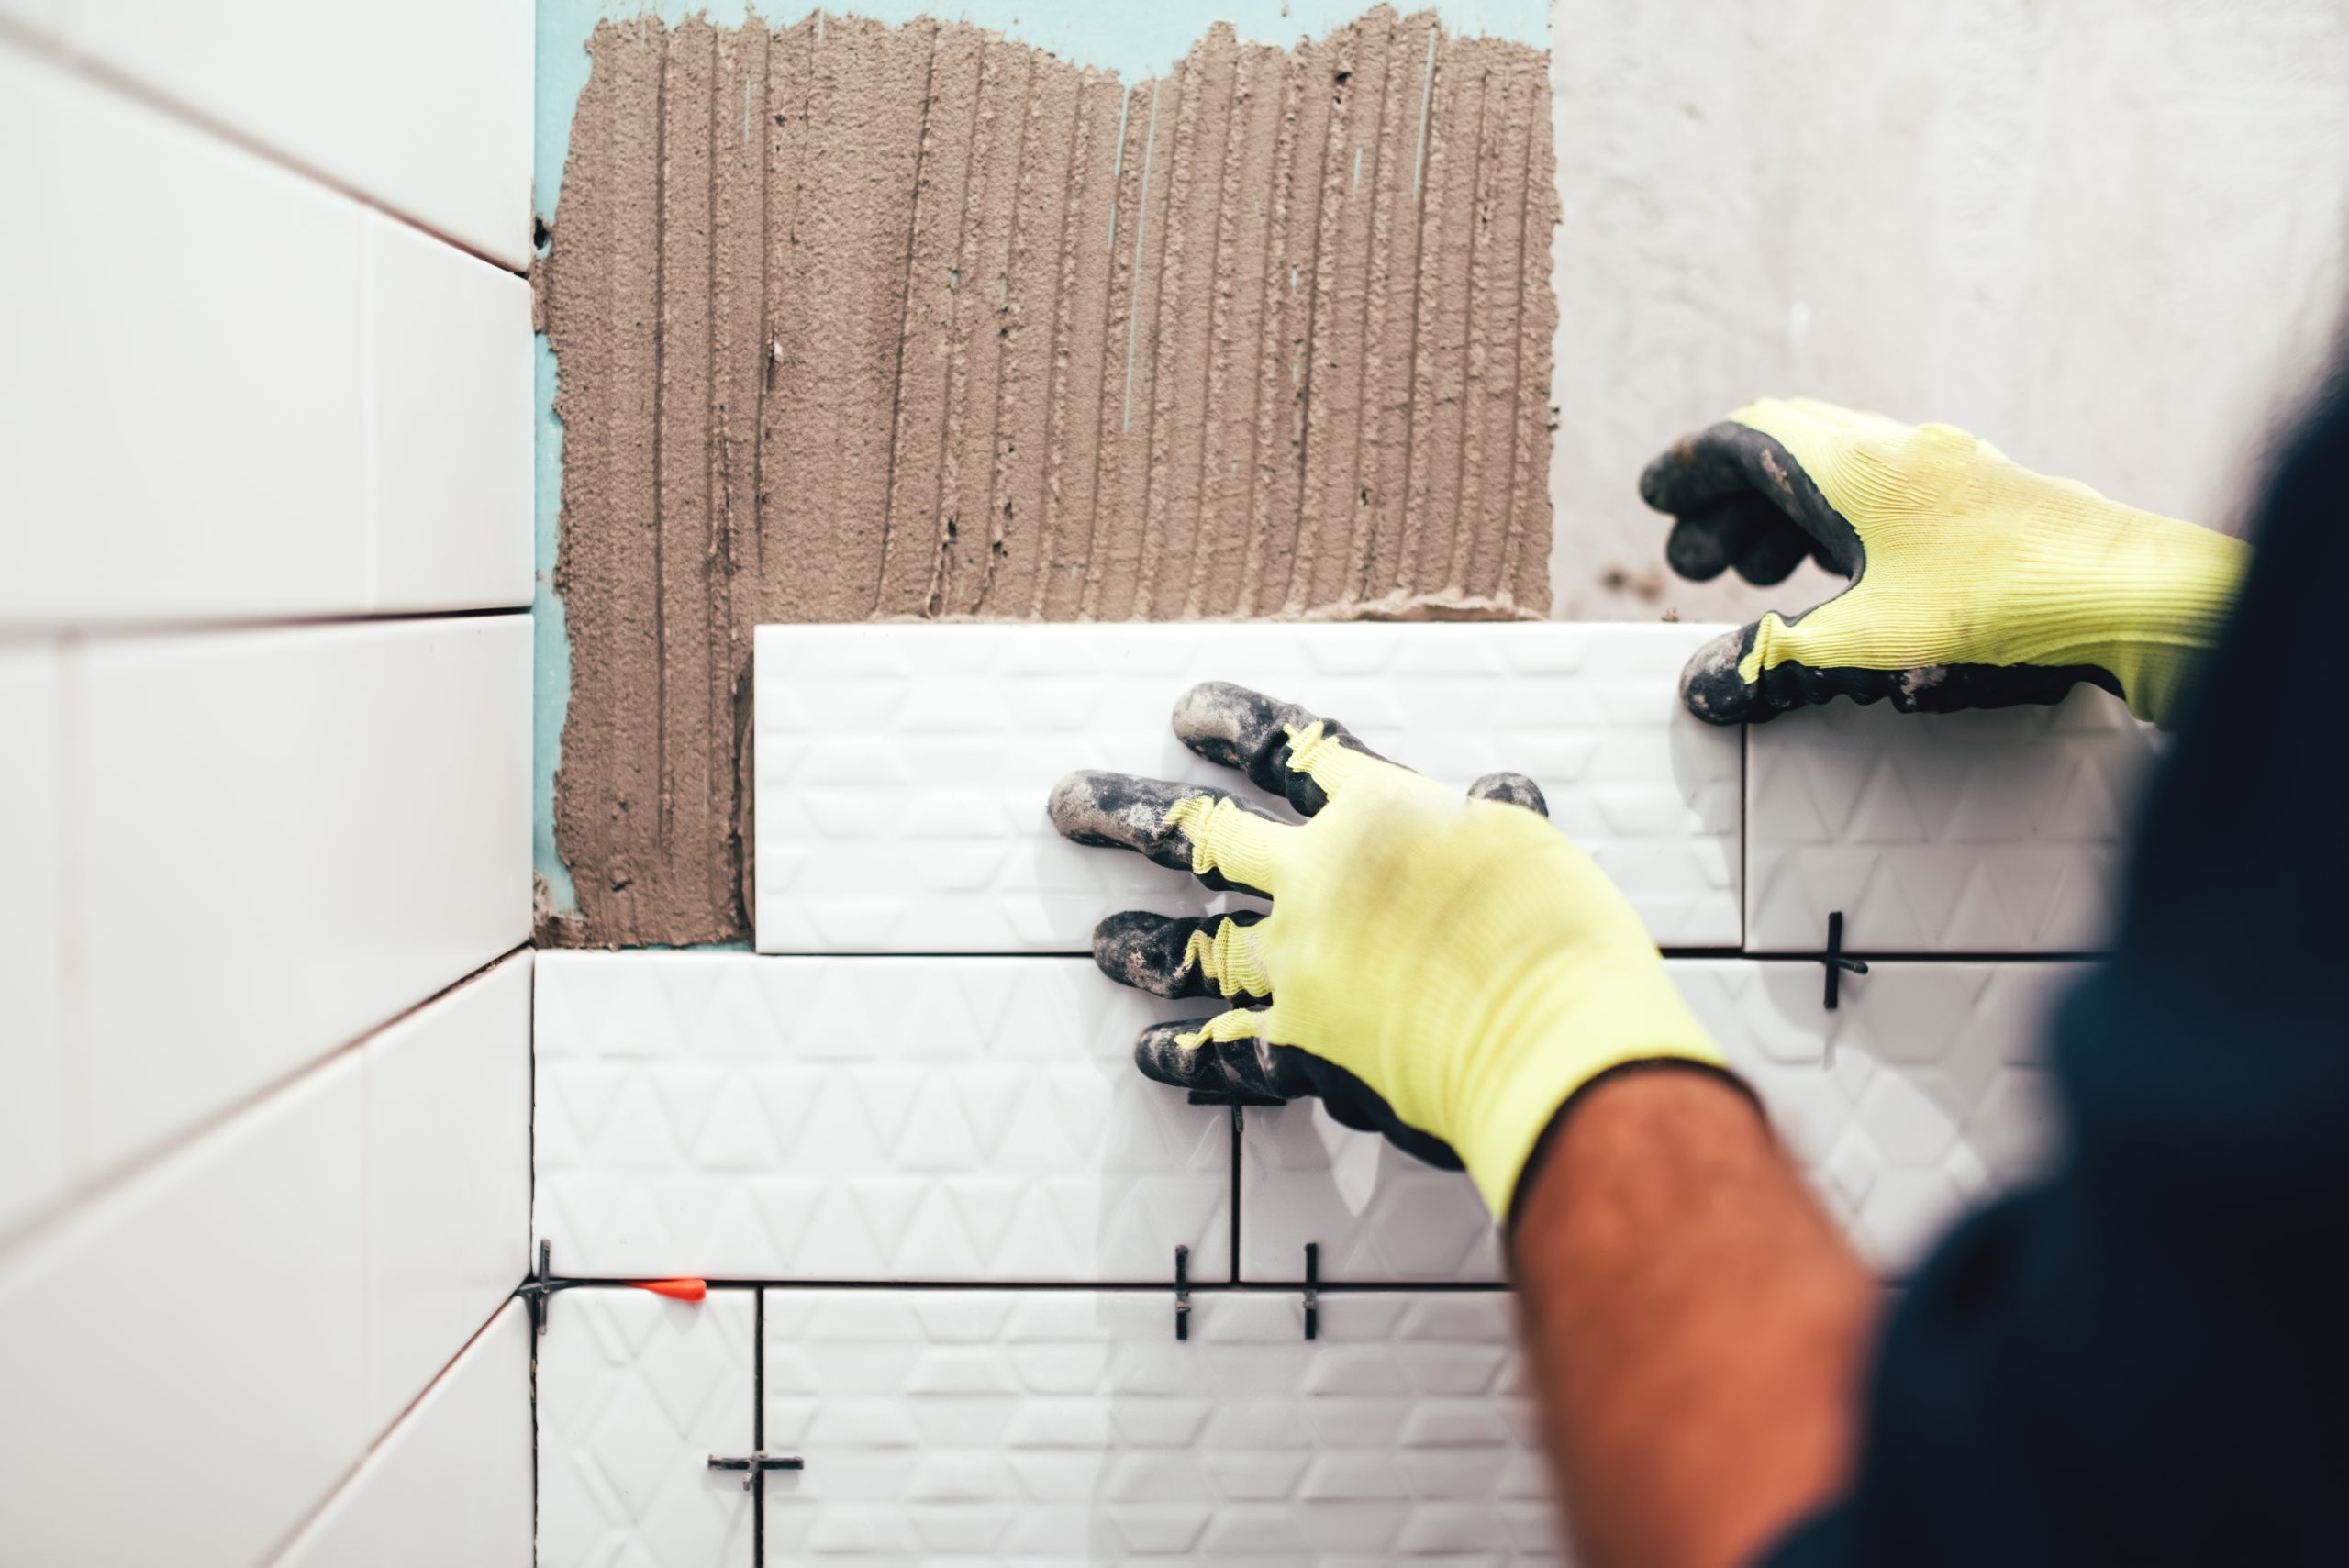 industrial construction worker installing small ceramic tiles on bathroom